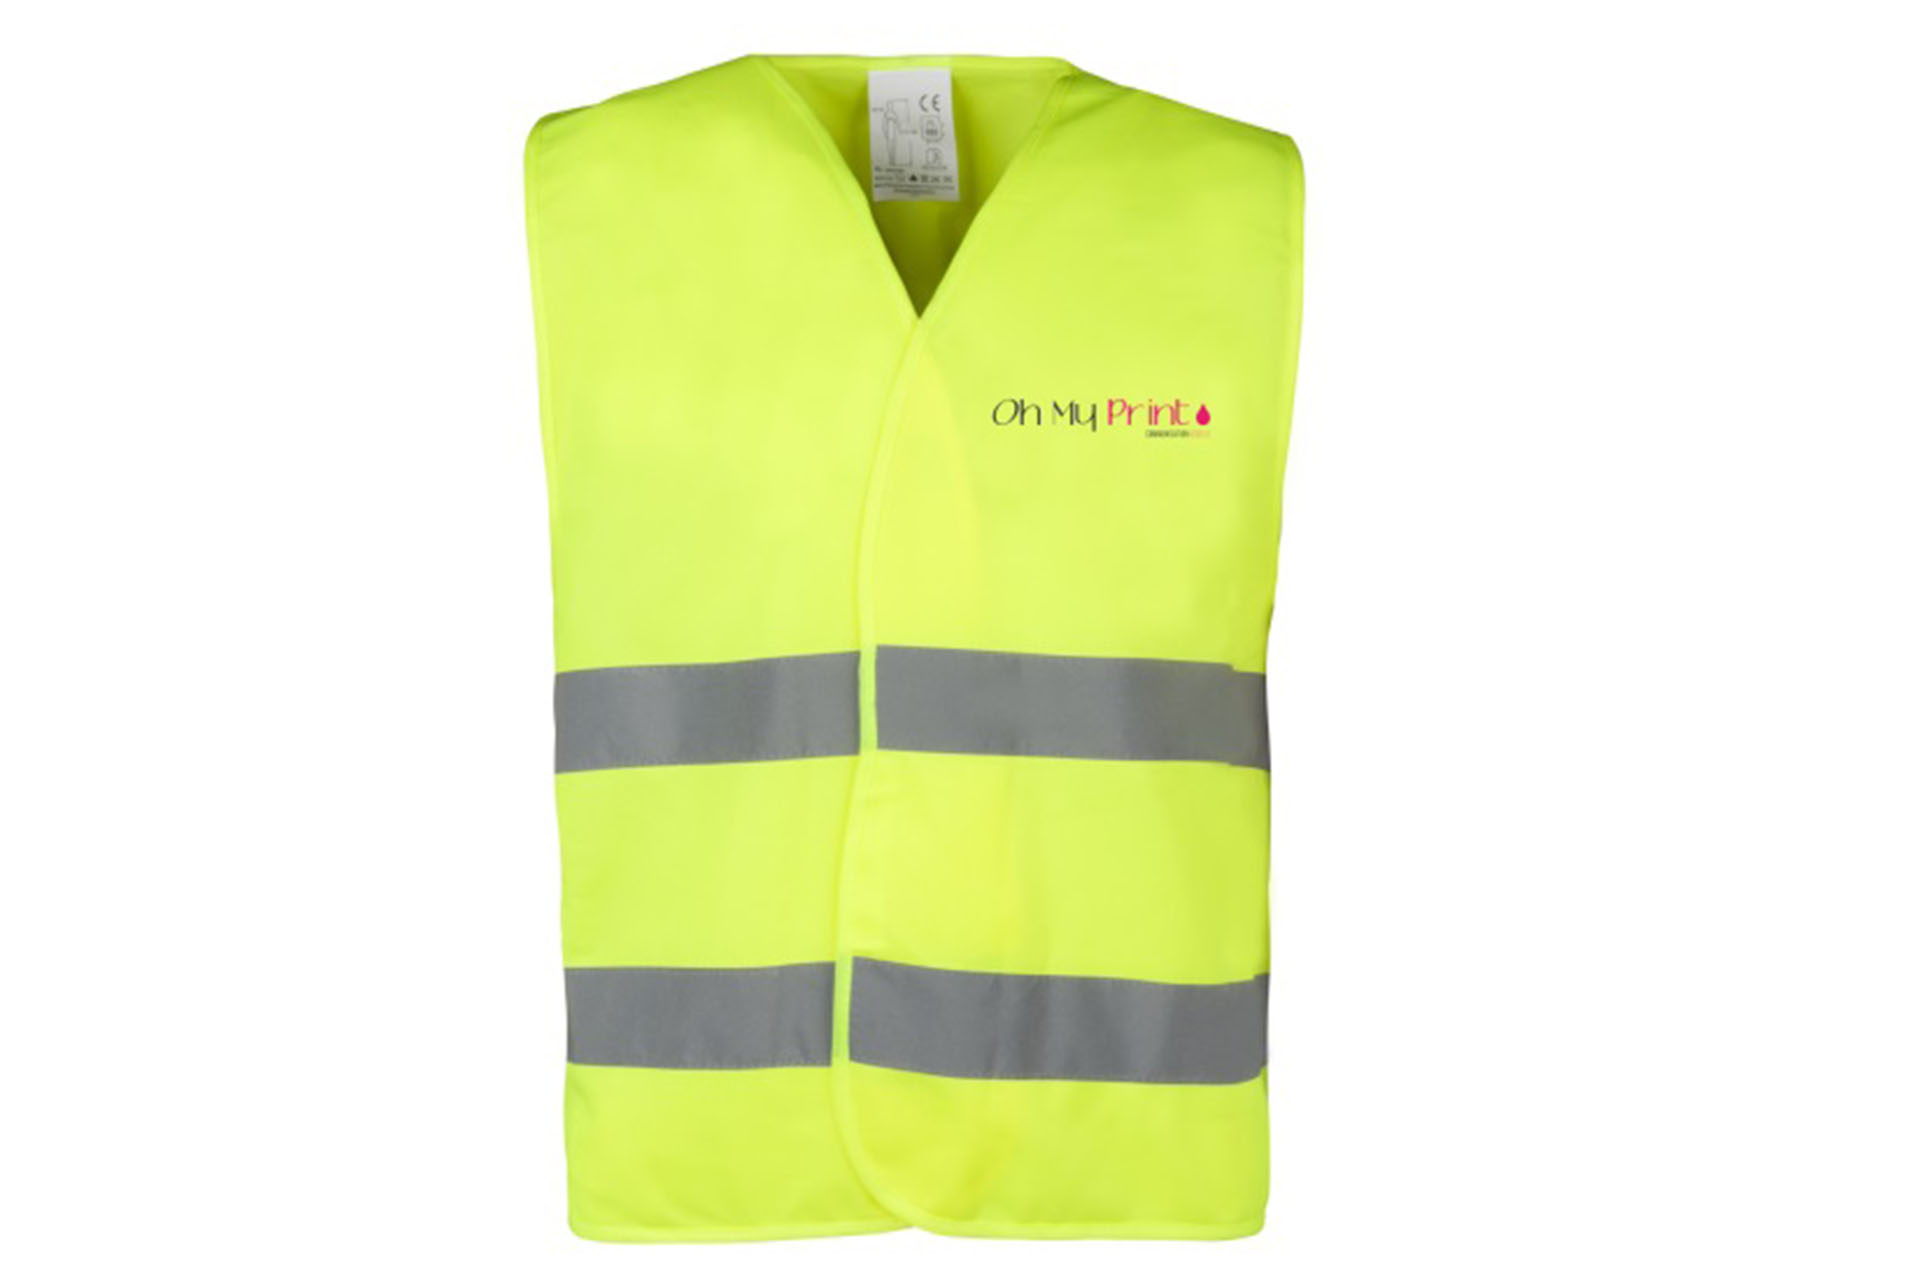 Gillet-de-securite-ohmyprint